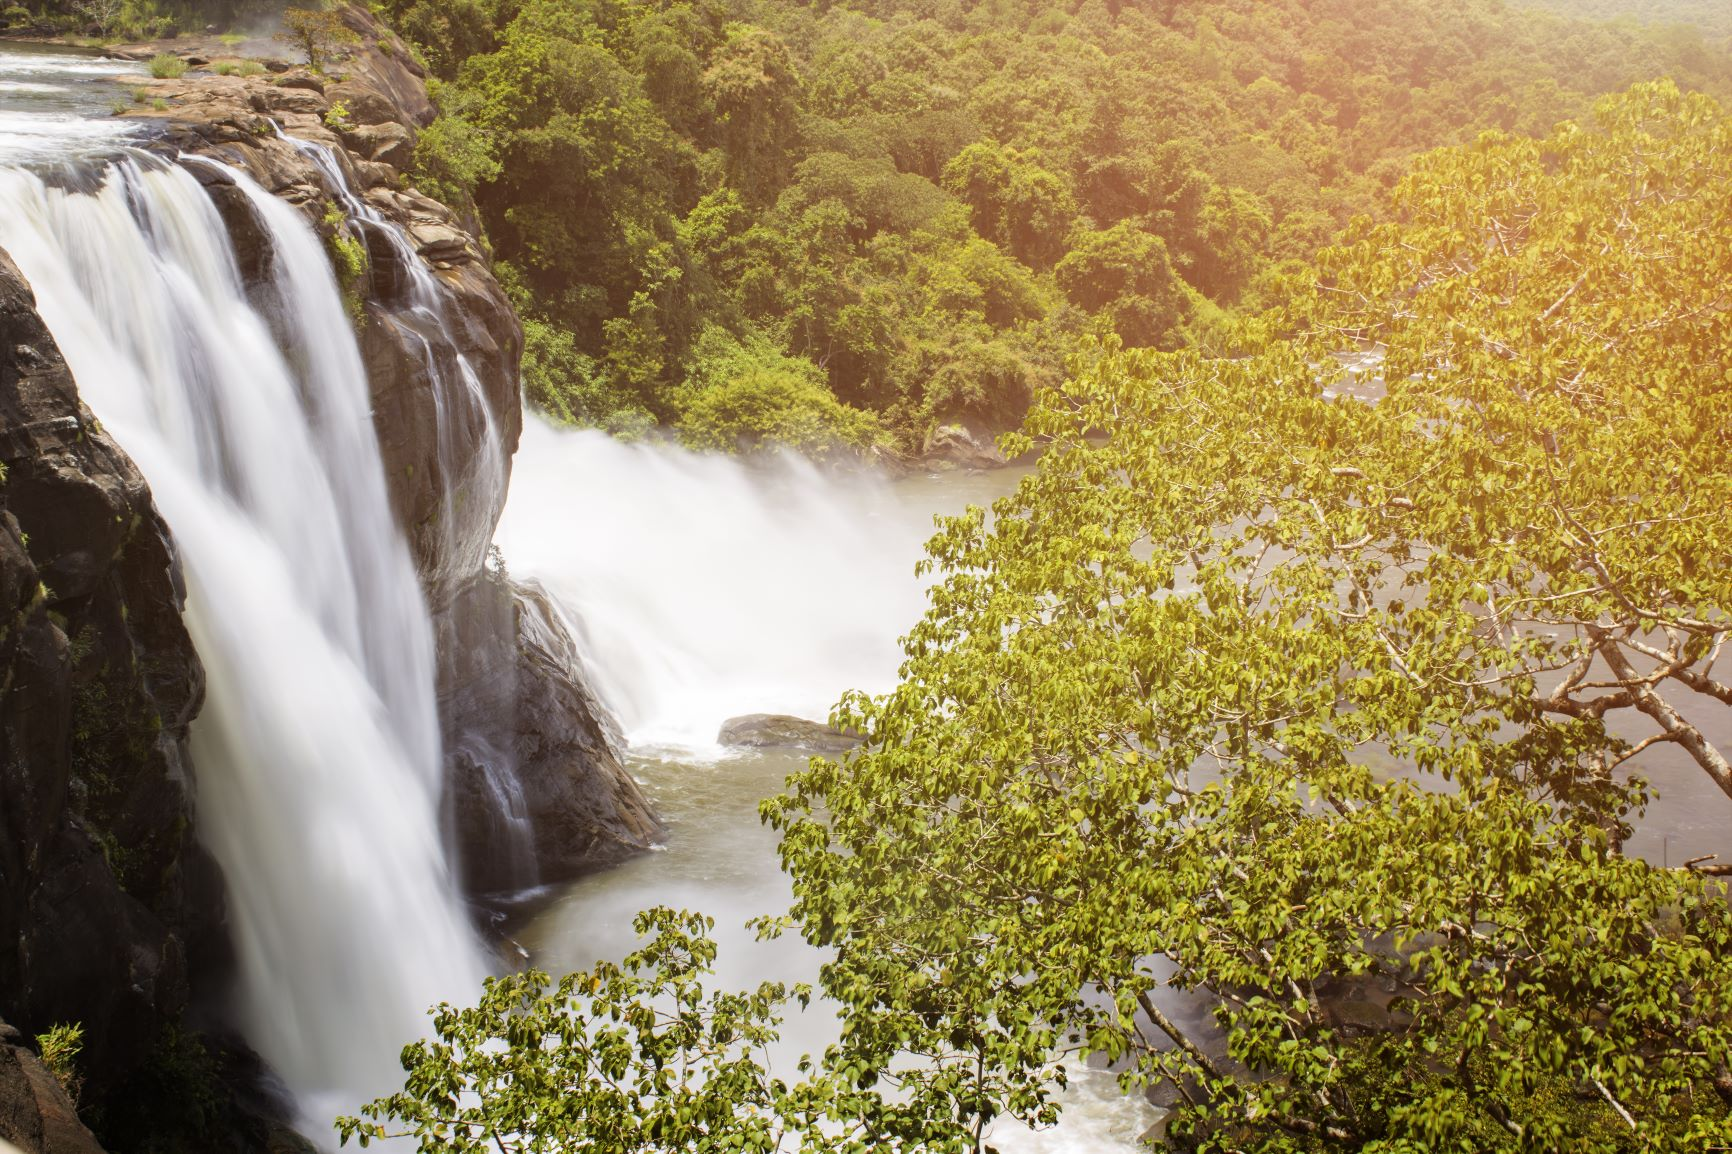 Find a peaceful setting on a Gap Year to India